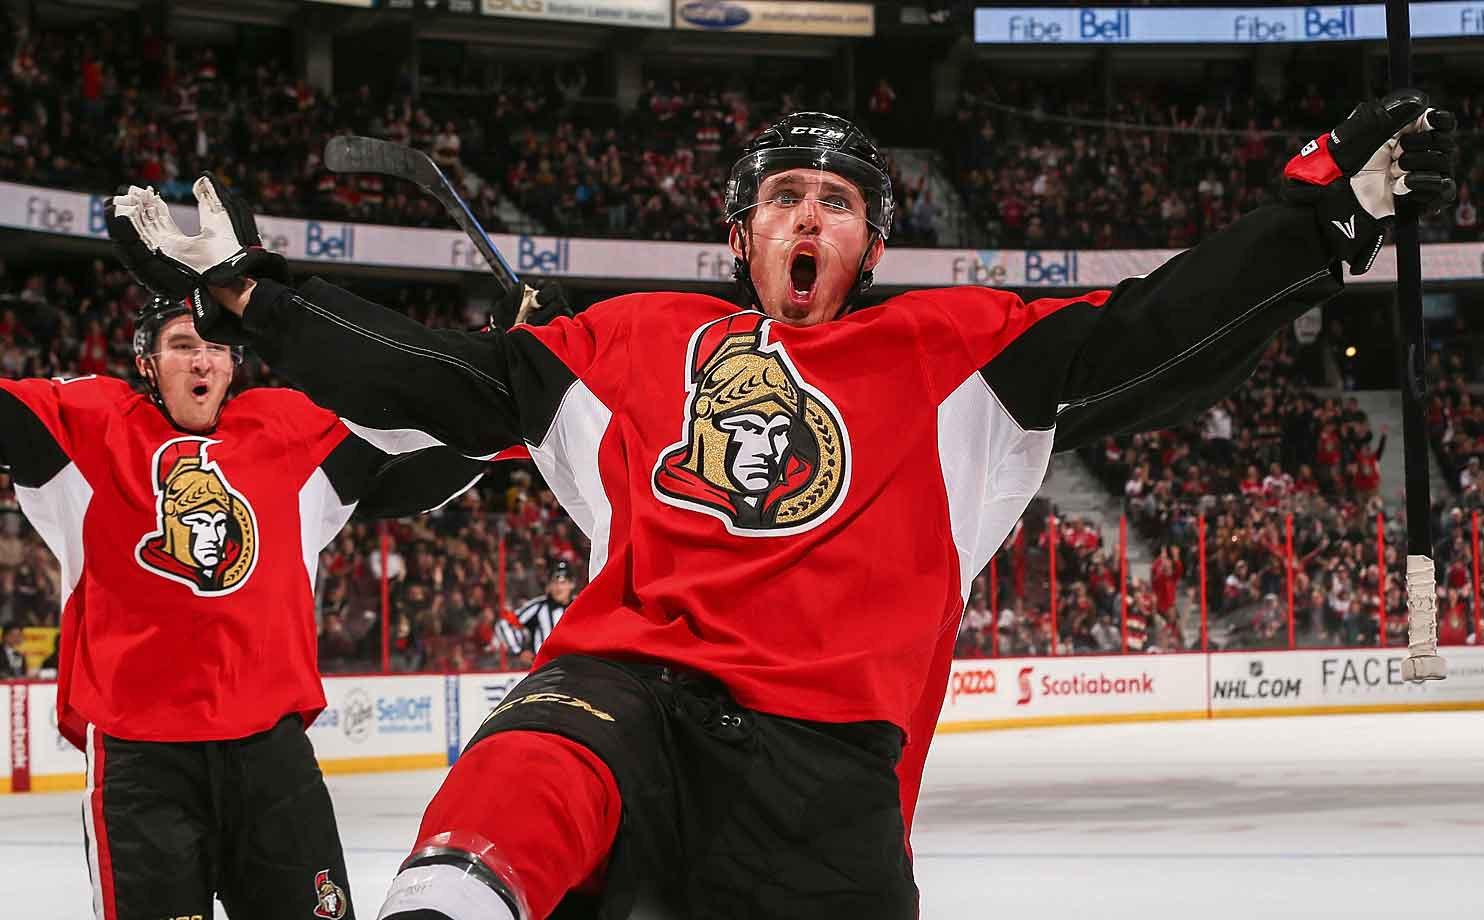 All hail! The Senators defenseman celebrates the game winning goal late in the third period against the Red Wings at Ottawa's Canadian Tire Centre on November 4, 2014.